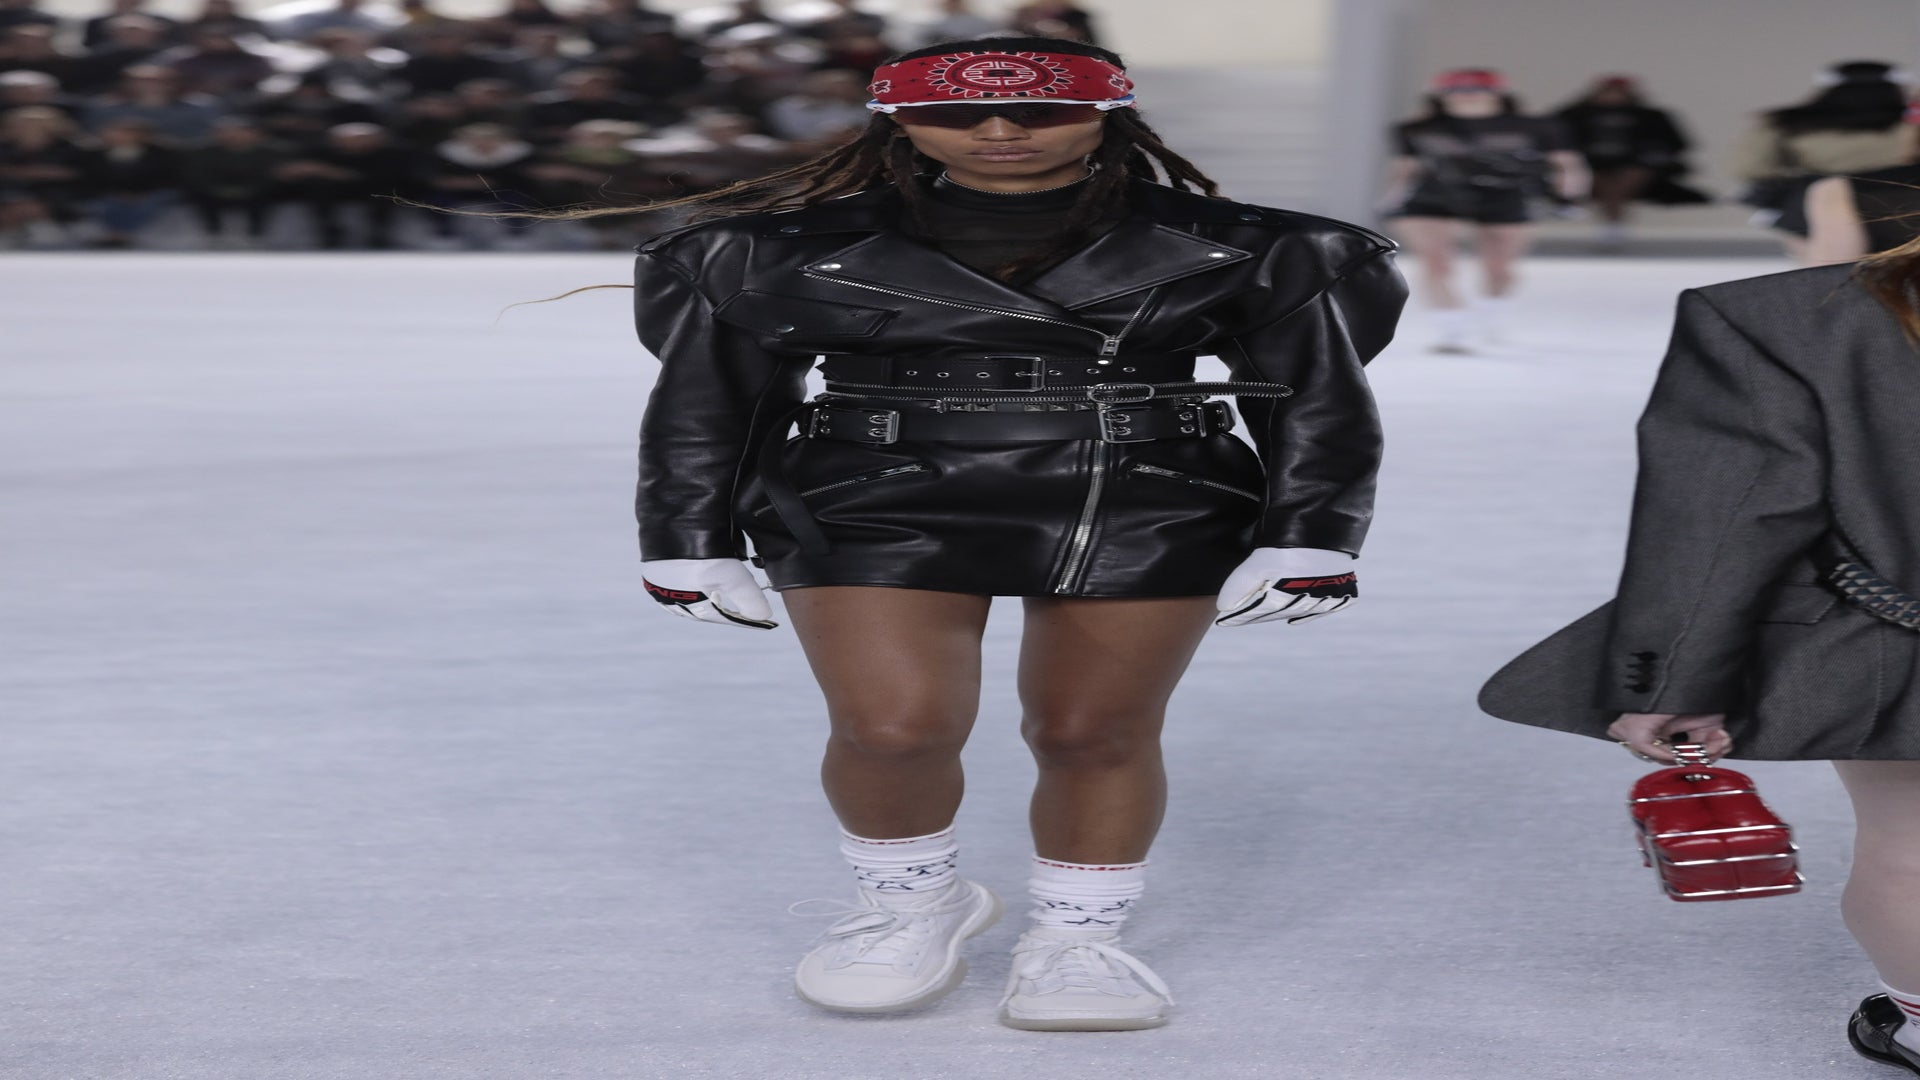 Fashion Week Came Early! Alexander Wang Wows NYC With New Collection Debut